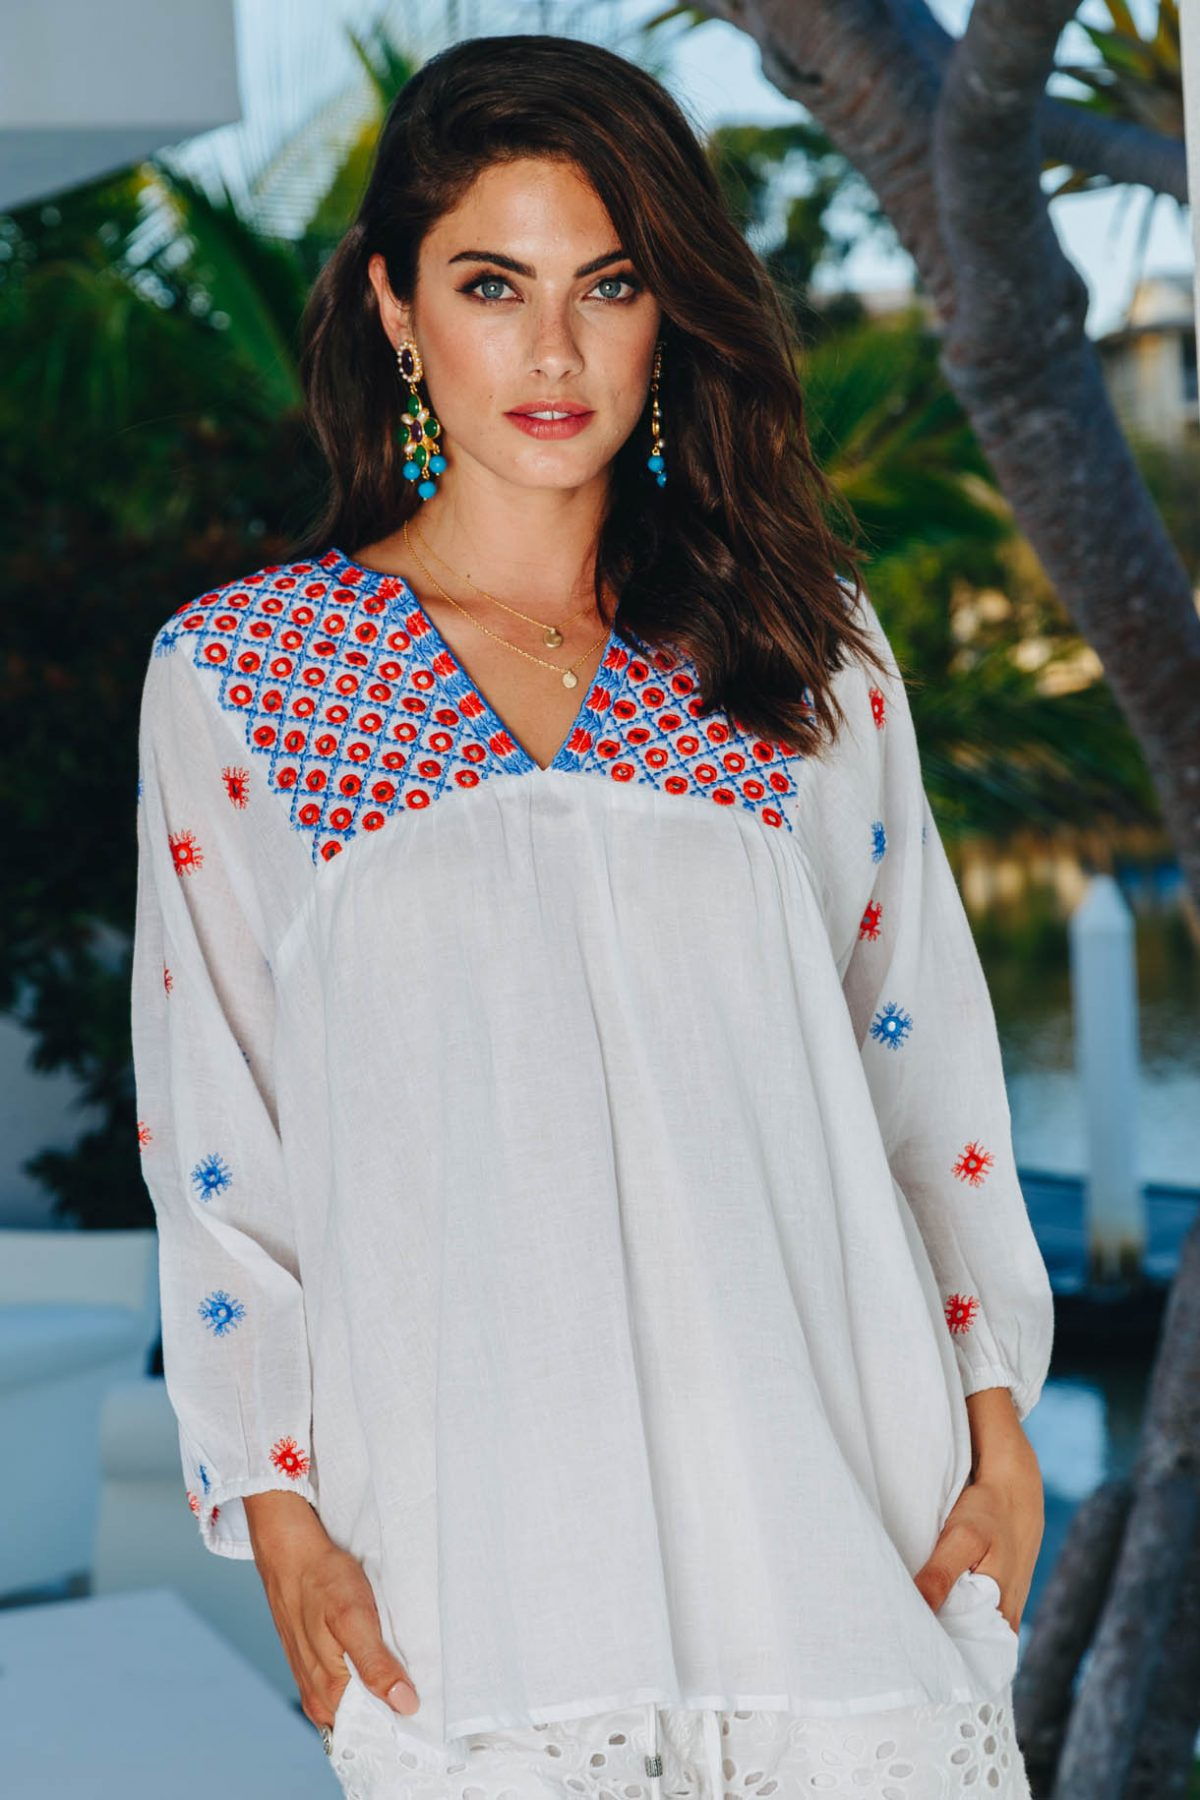 Lulasoul Lima Top collection July 2019